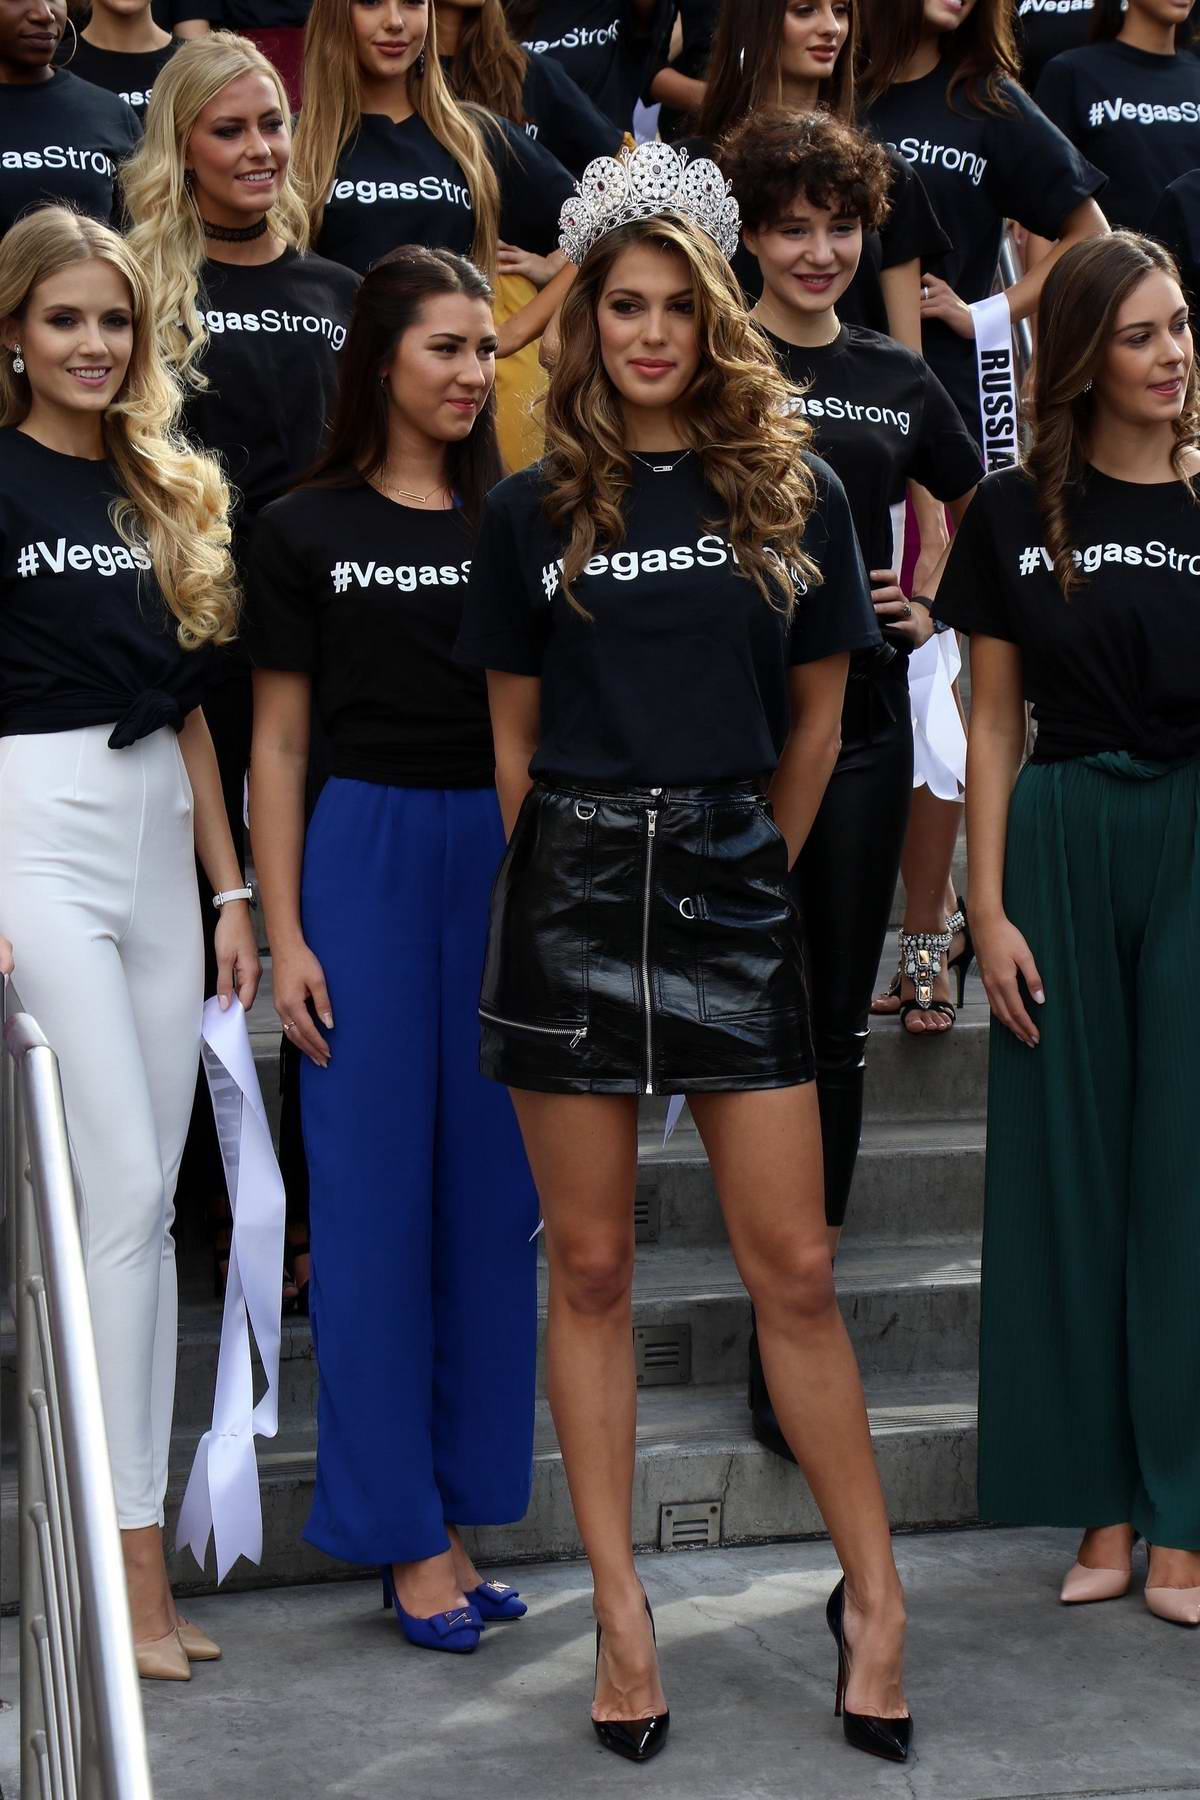 Iris Mittenaere poses as Miss Universe contestants arrive at a welcome event at Planet Hollywood Resort & Casino in Las Vegas